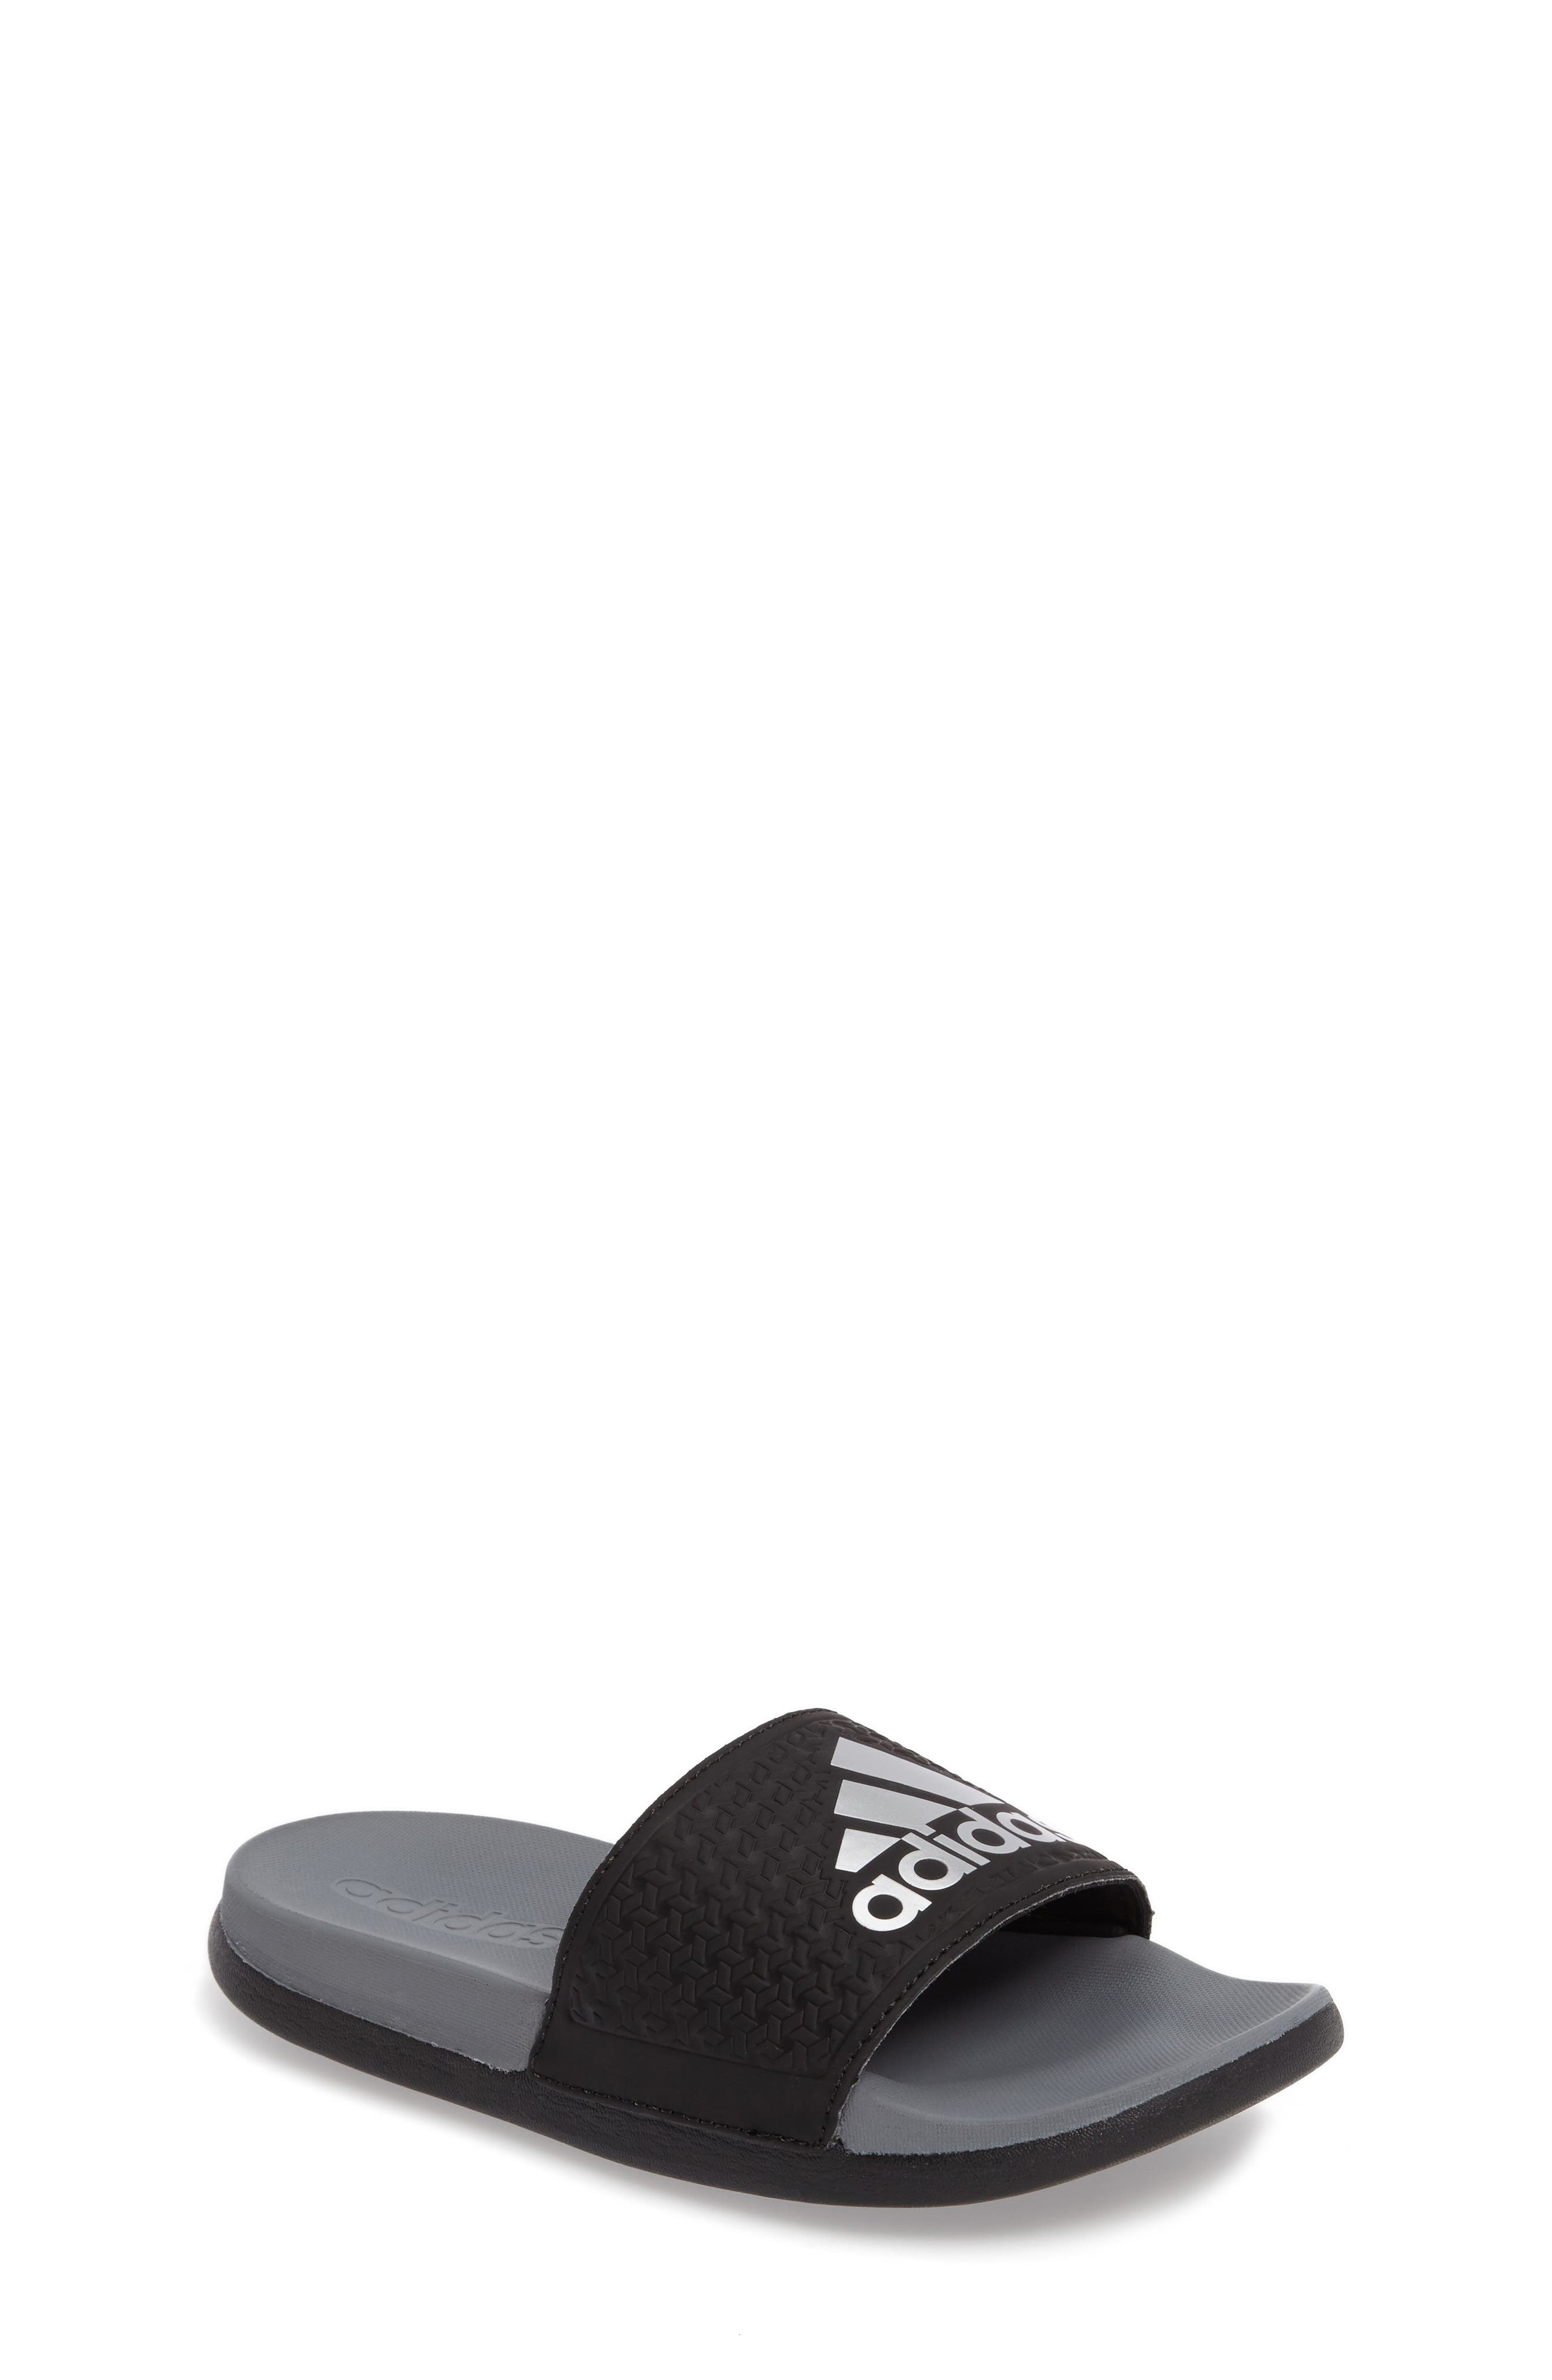 adidas Adilette Ultra Slide Sandal (Toddler, Little Kid & Big Kid)